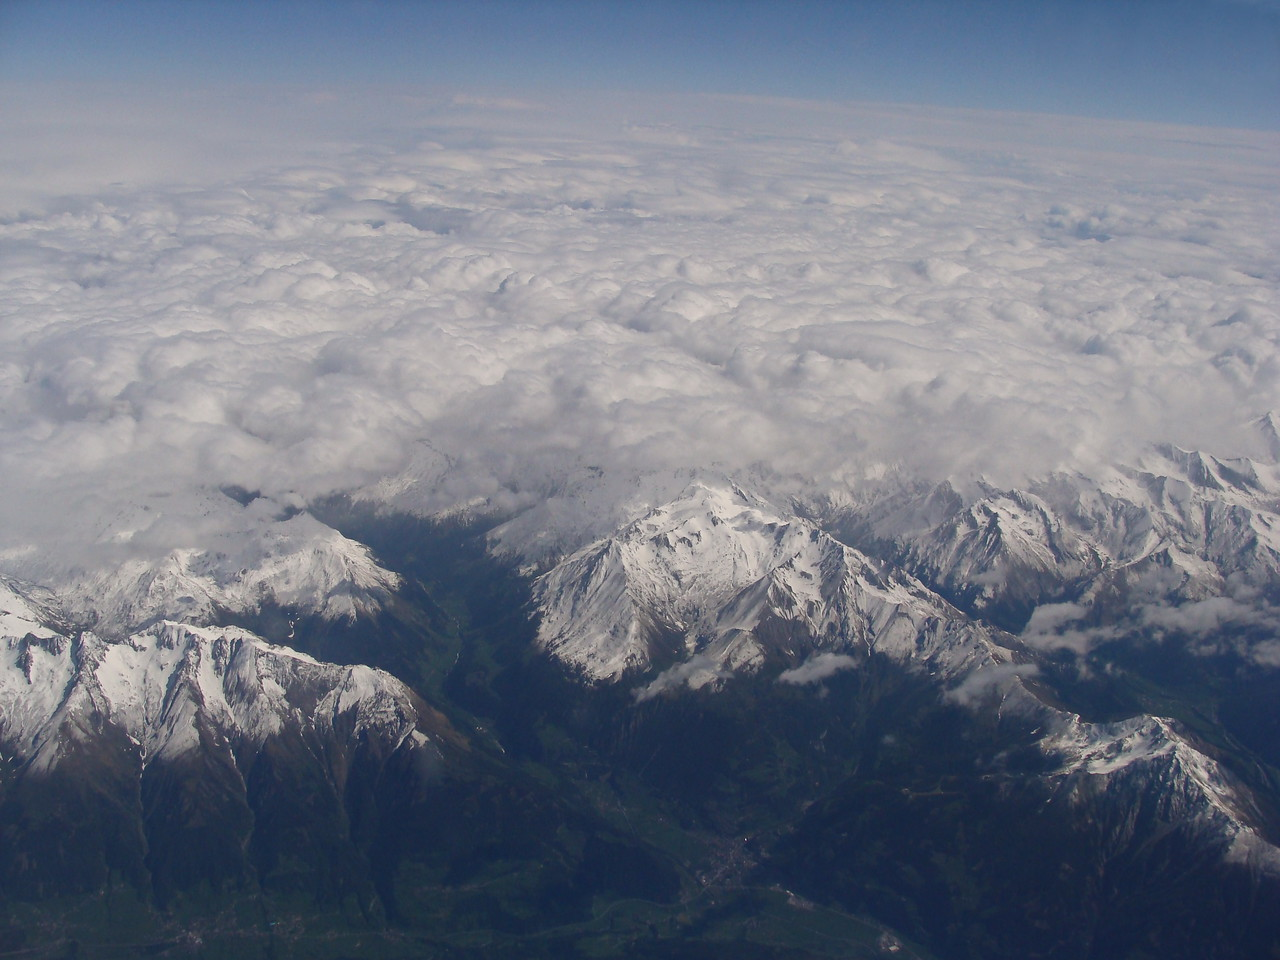 Clouds Blanket the Alps